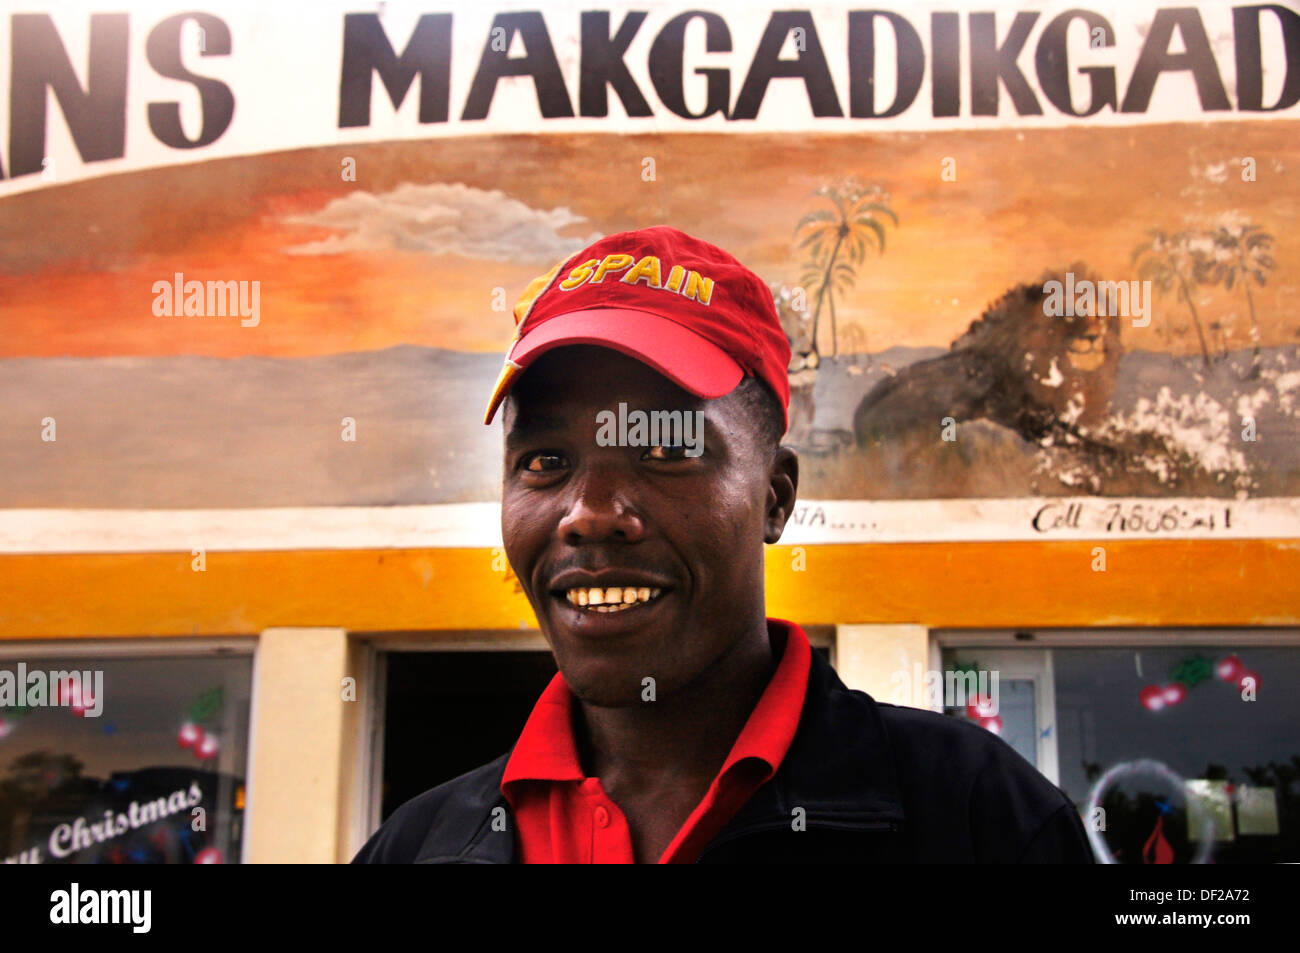 Man in a gas station with a cap of Spain (winner of the South Africa 2010 FIFA World Cup), Gweta, Botswana - Stock Image